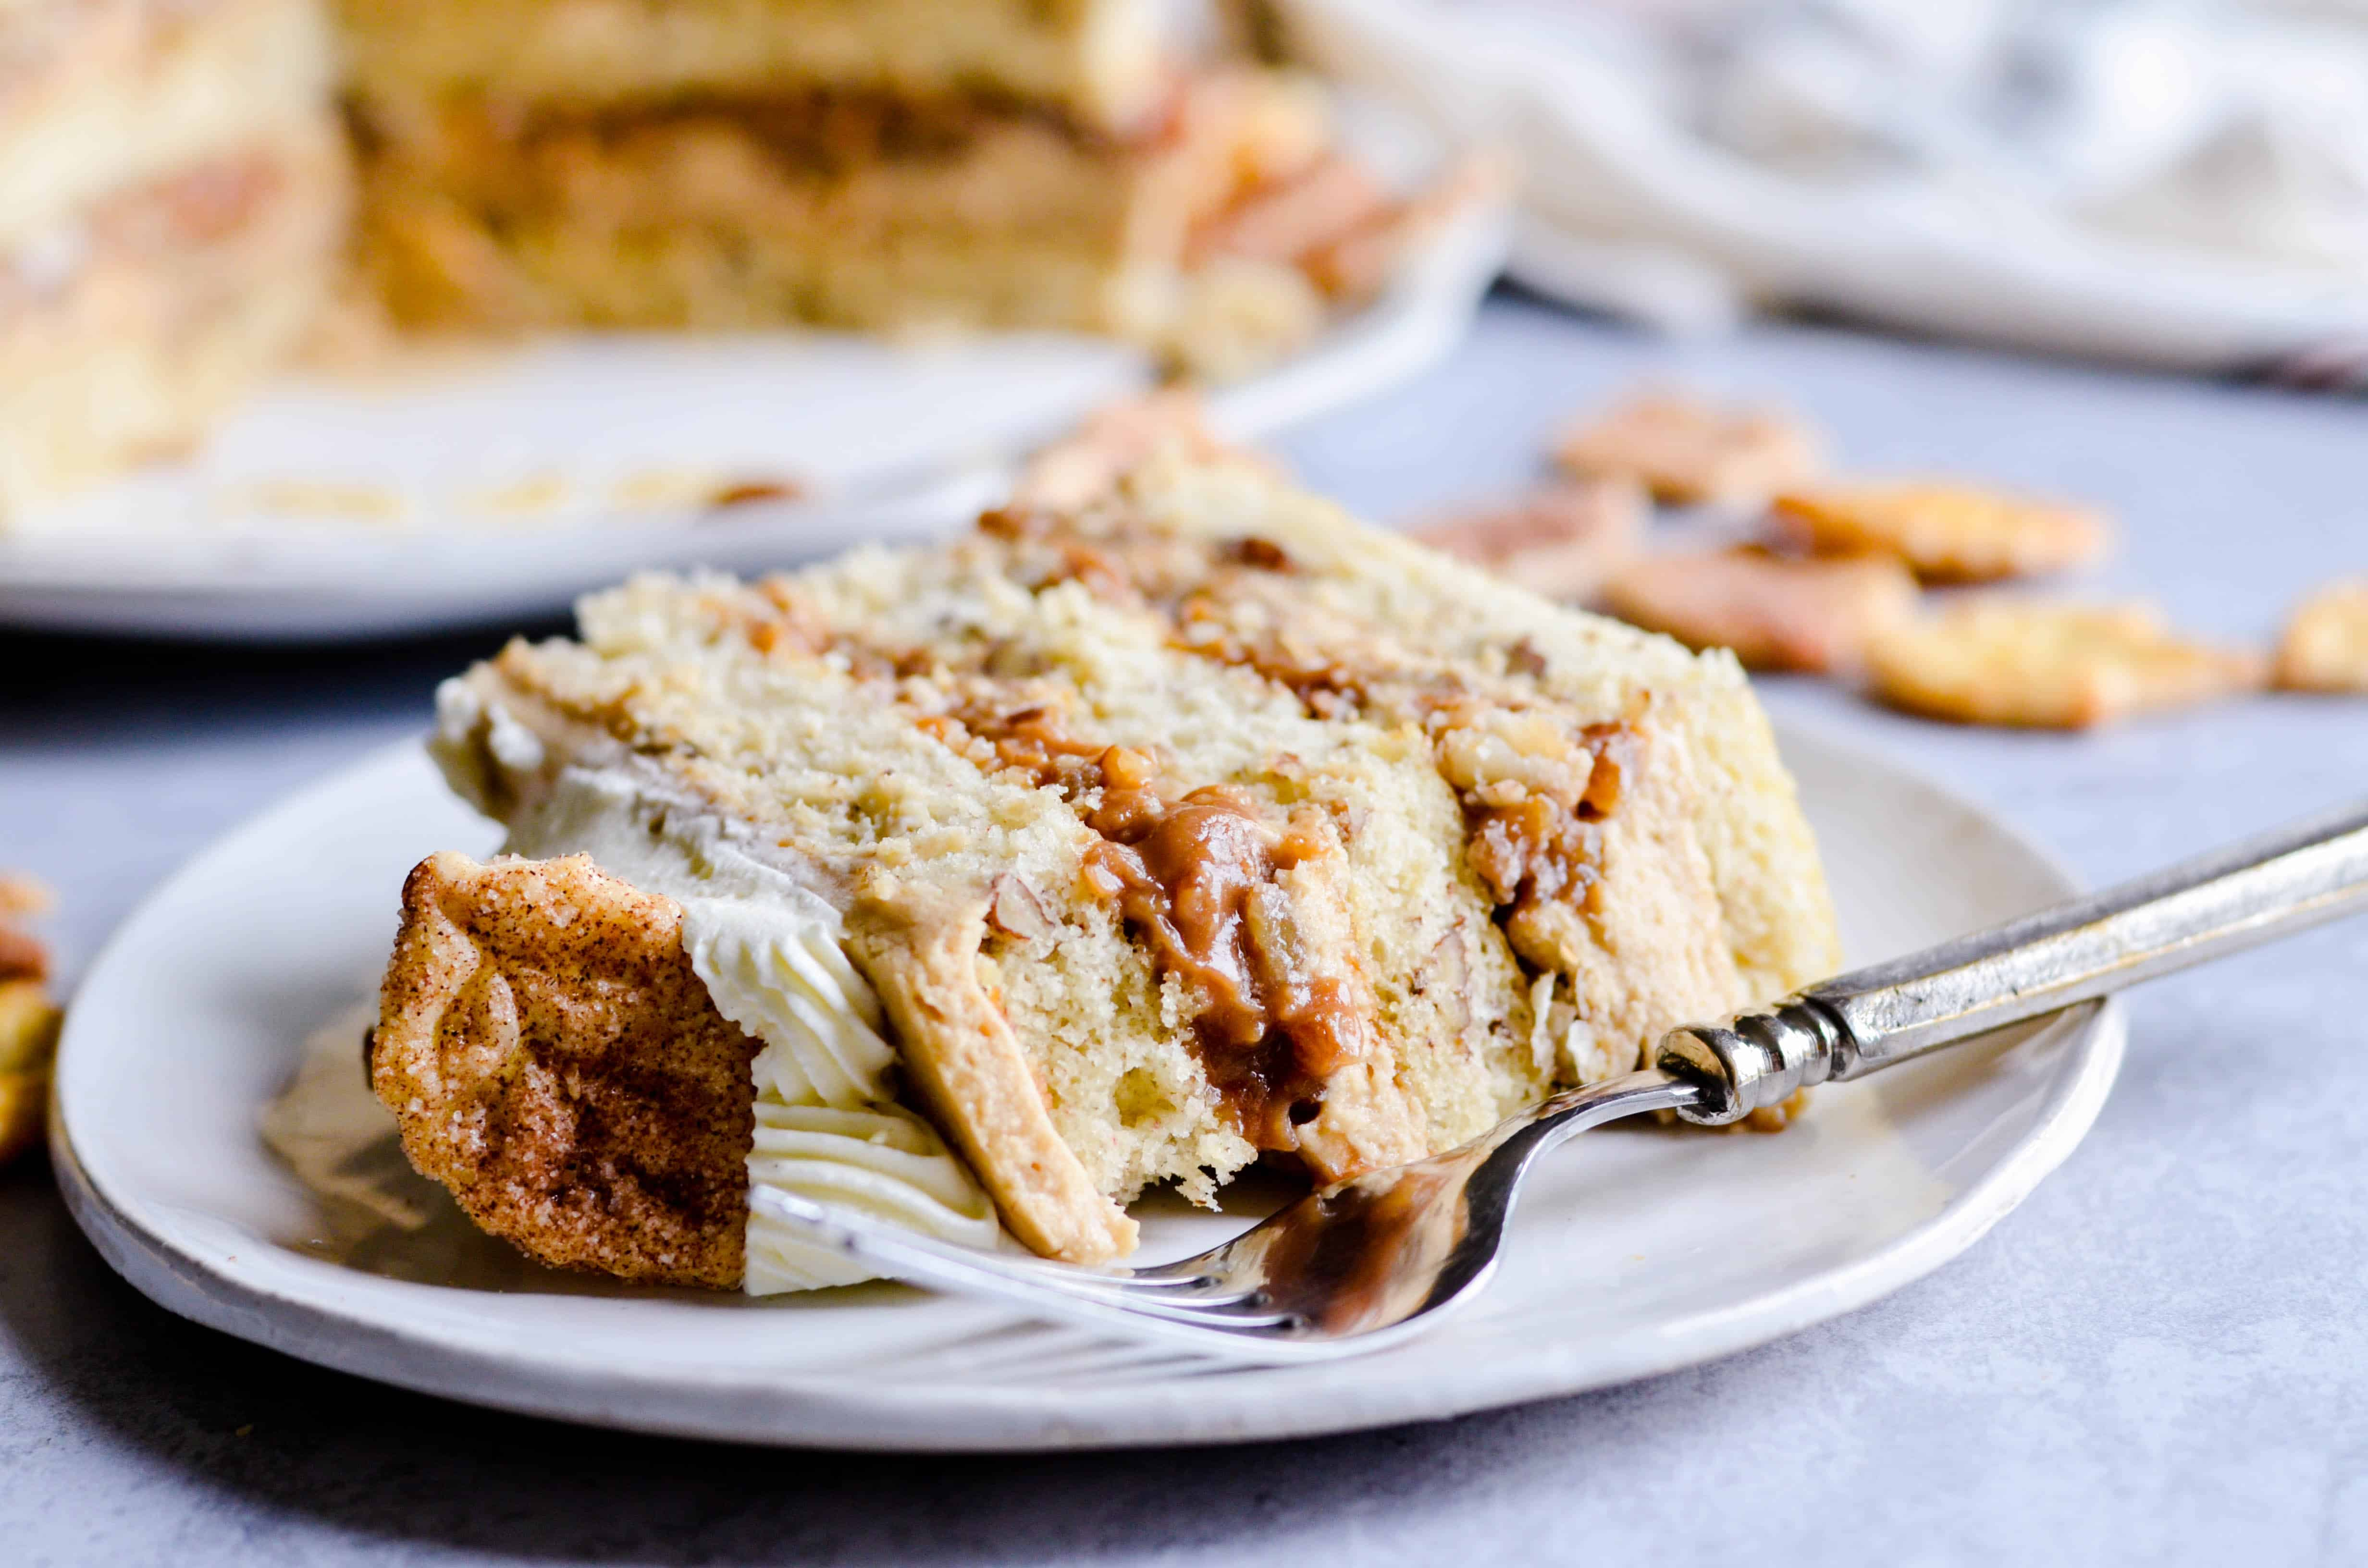 Light and airy pecan pie cake layered with caramel buttercream and a no-bake pecan pie filling. This cake is everything you want on Thanksgiving day!